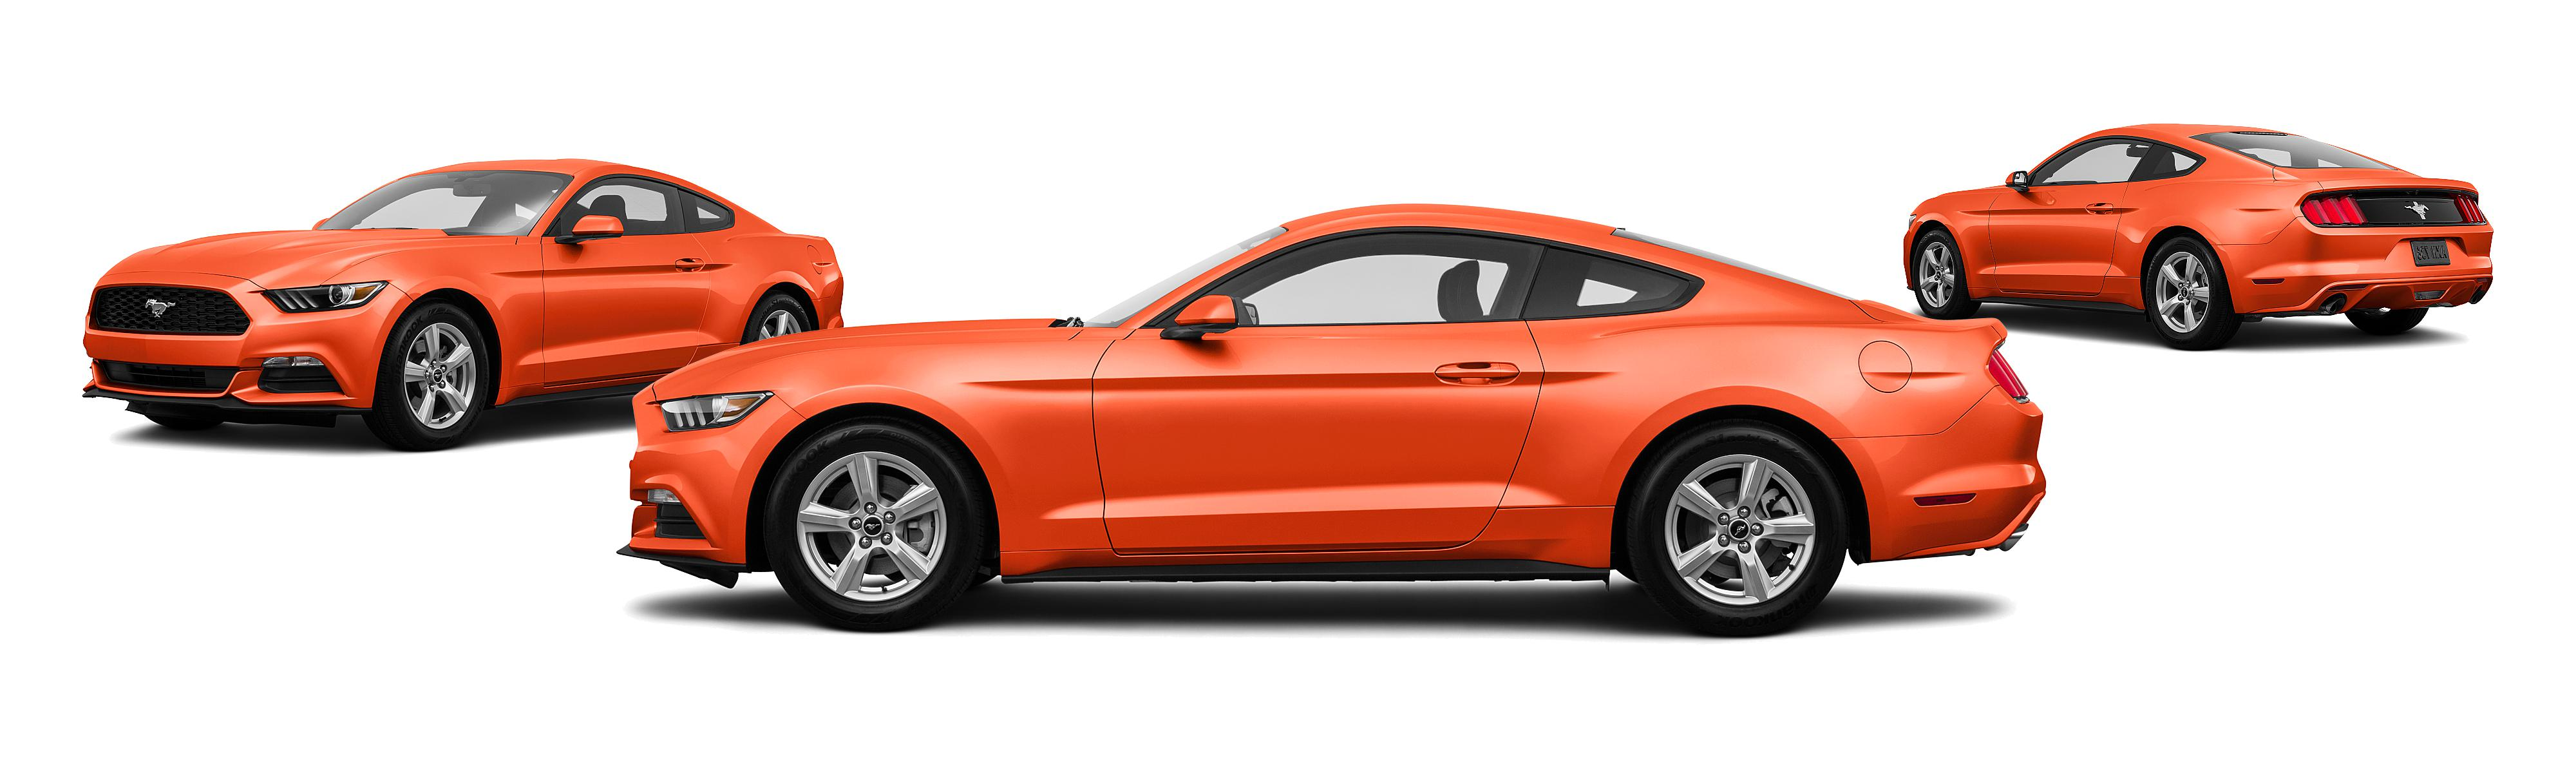 2015 Ford Mustang V6 2dr Fastback Research GrooveCar